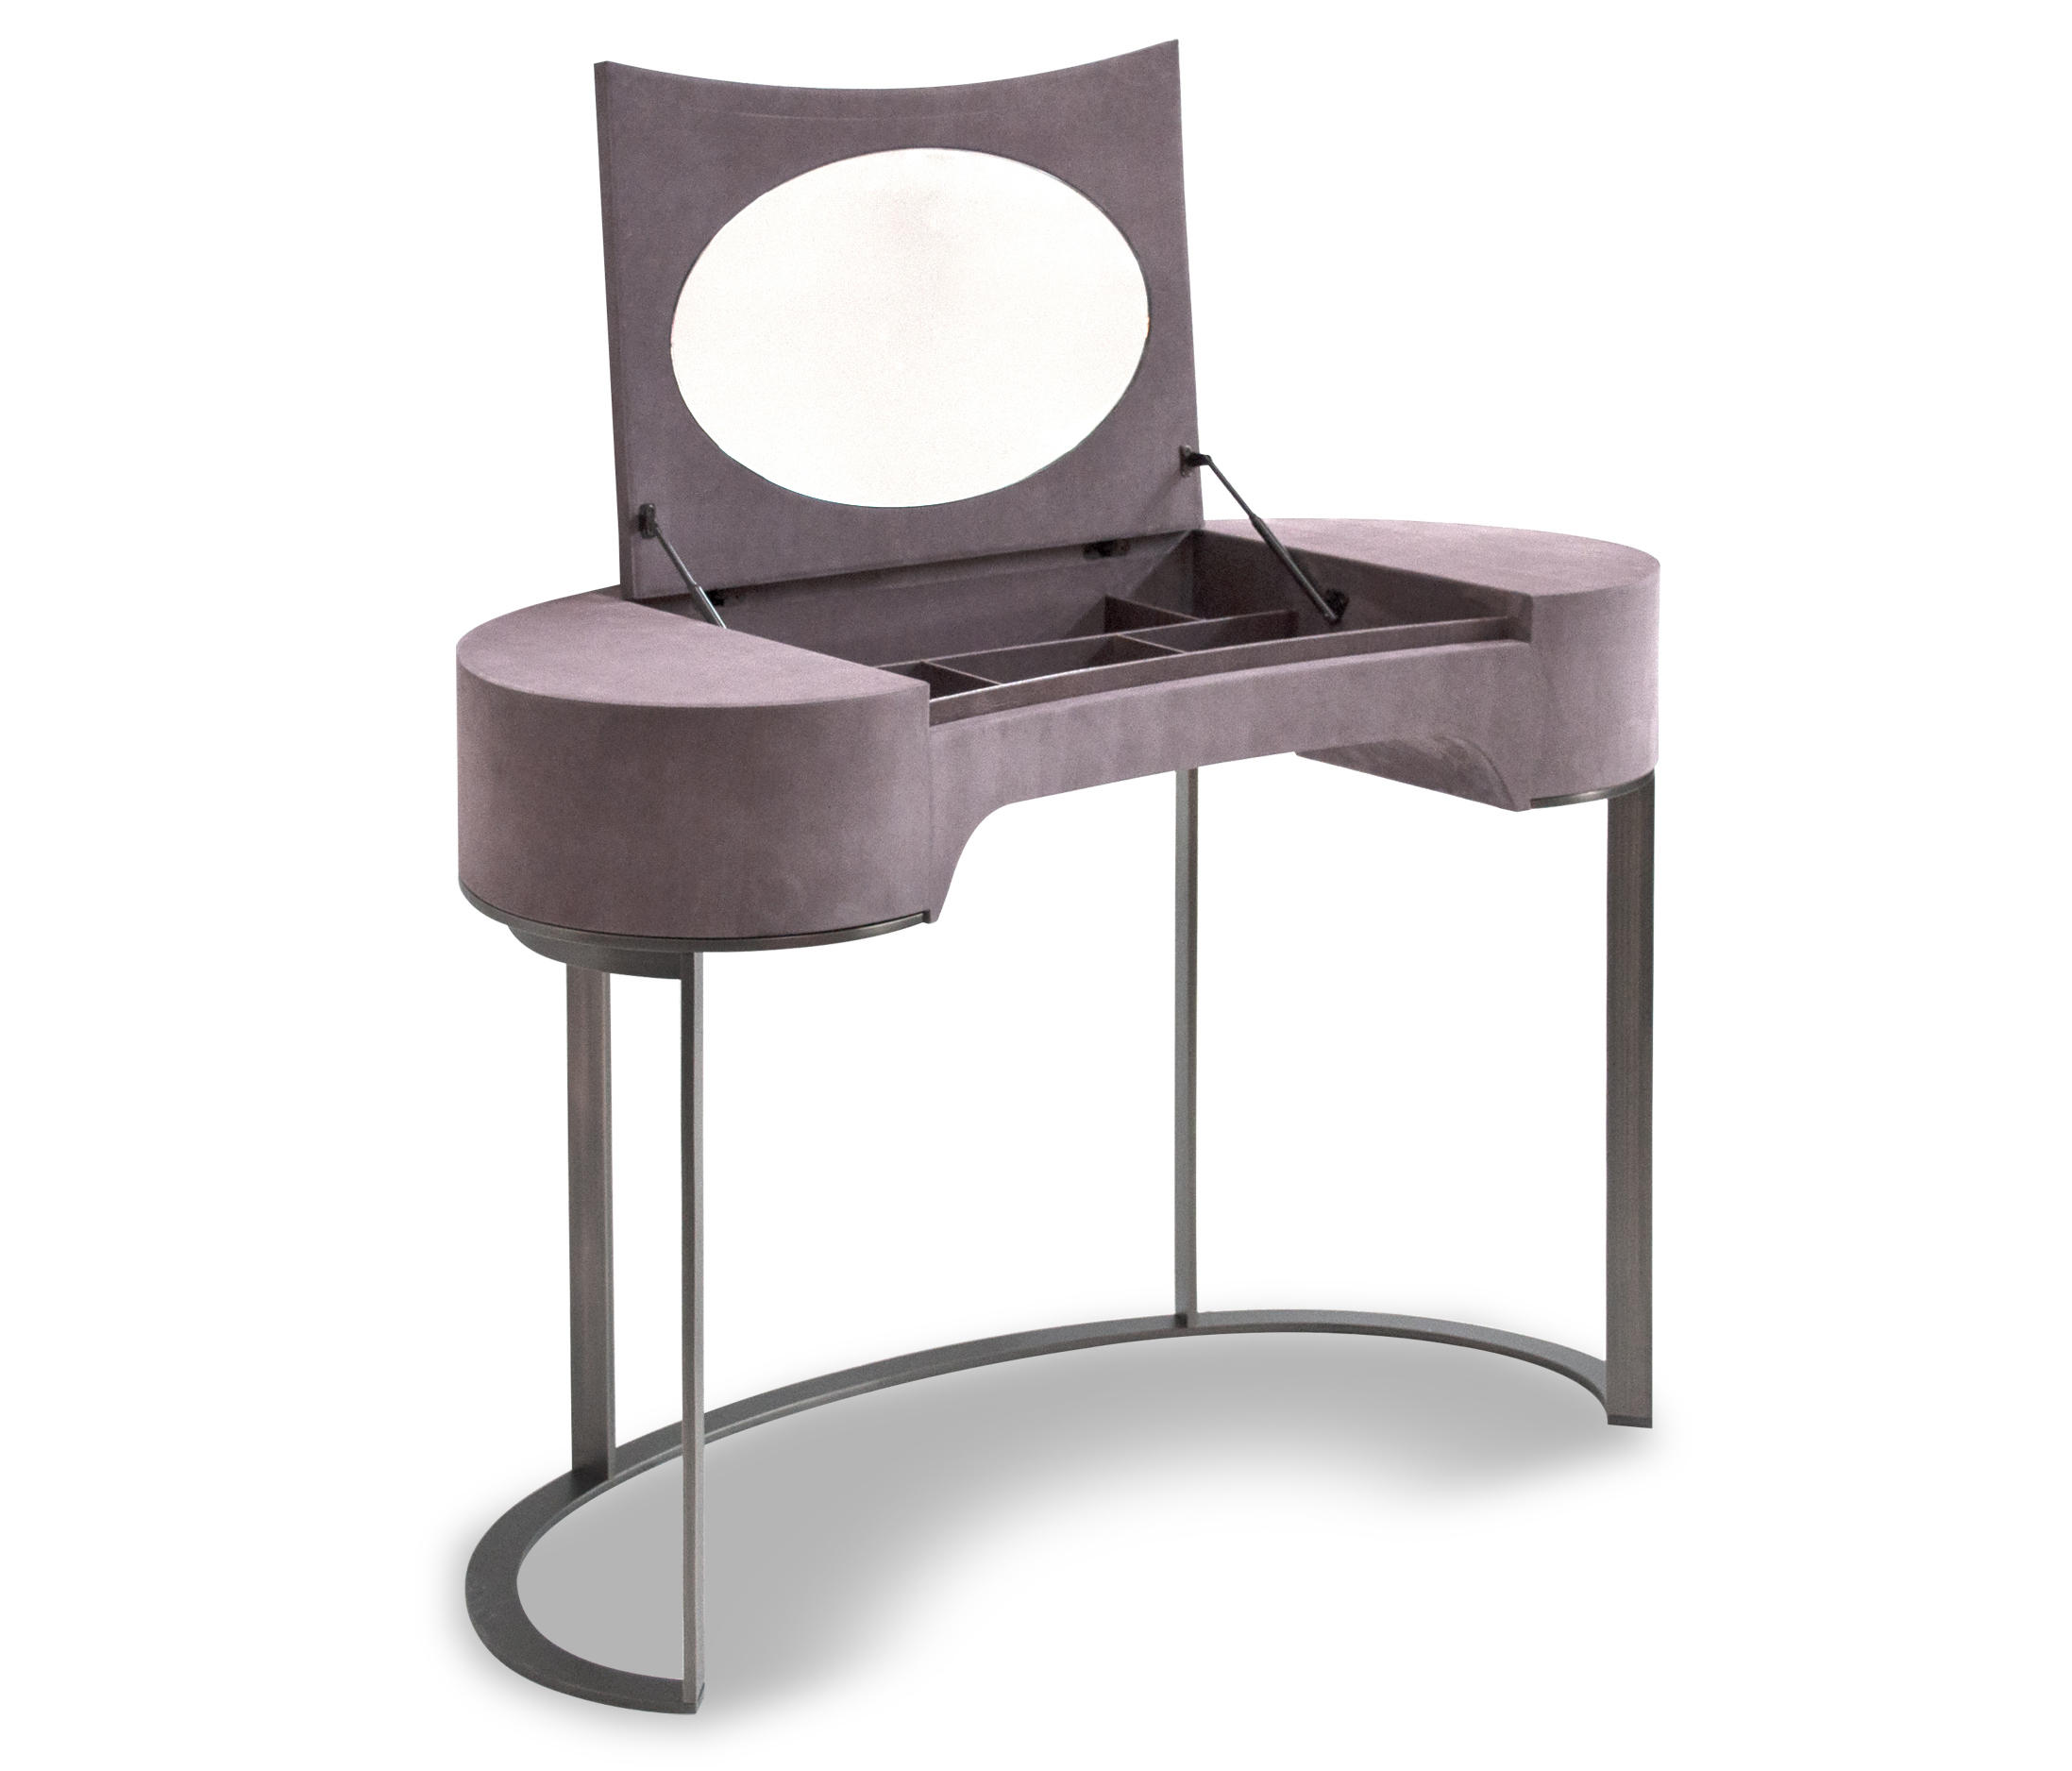 Dressing Tables: YVES DRESSING TABLE - Dressing Tables From Baxter